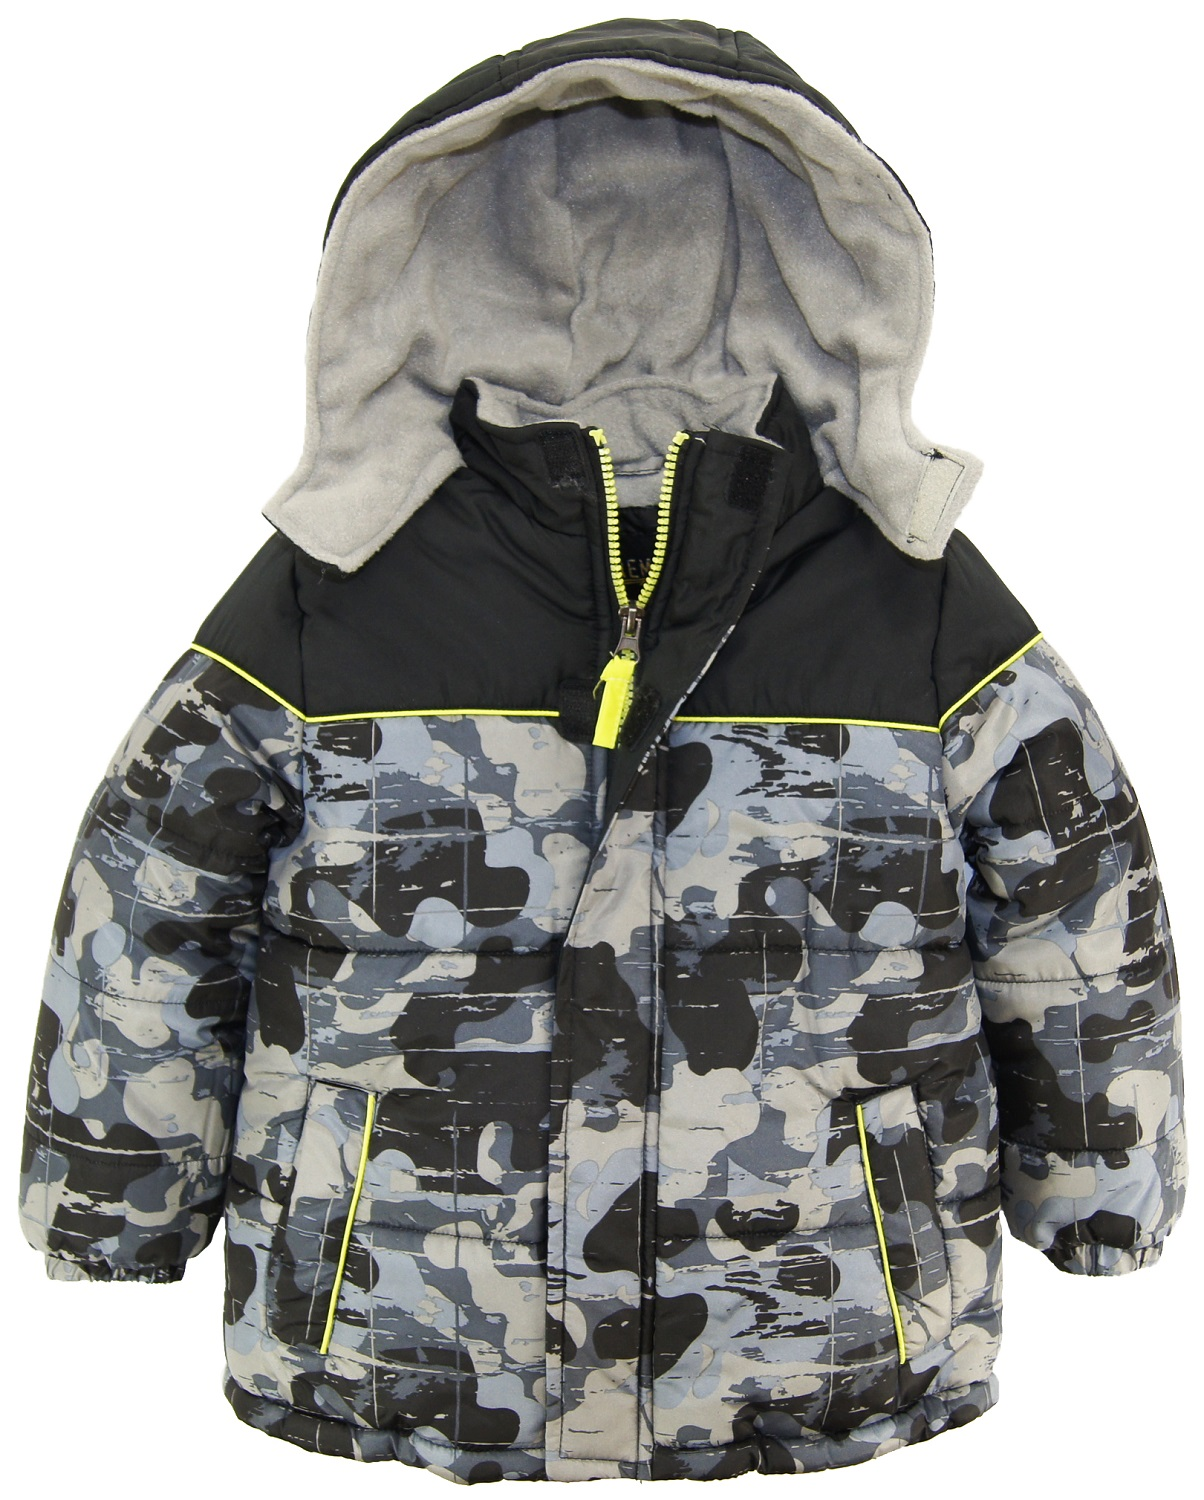 iXtreme boys square quilting camo print jacket with free gift. Carhartt Big Boys' Work Active Jacket. by Carhartt. $ - $ $ 59 $ 79 99 Prime. FREE Shipping on eligible orders. Some sizes/colors are Prime eligible. out of 5 stars Previous Page 1 2 3 20 Next Page. Show results for.